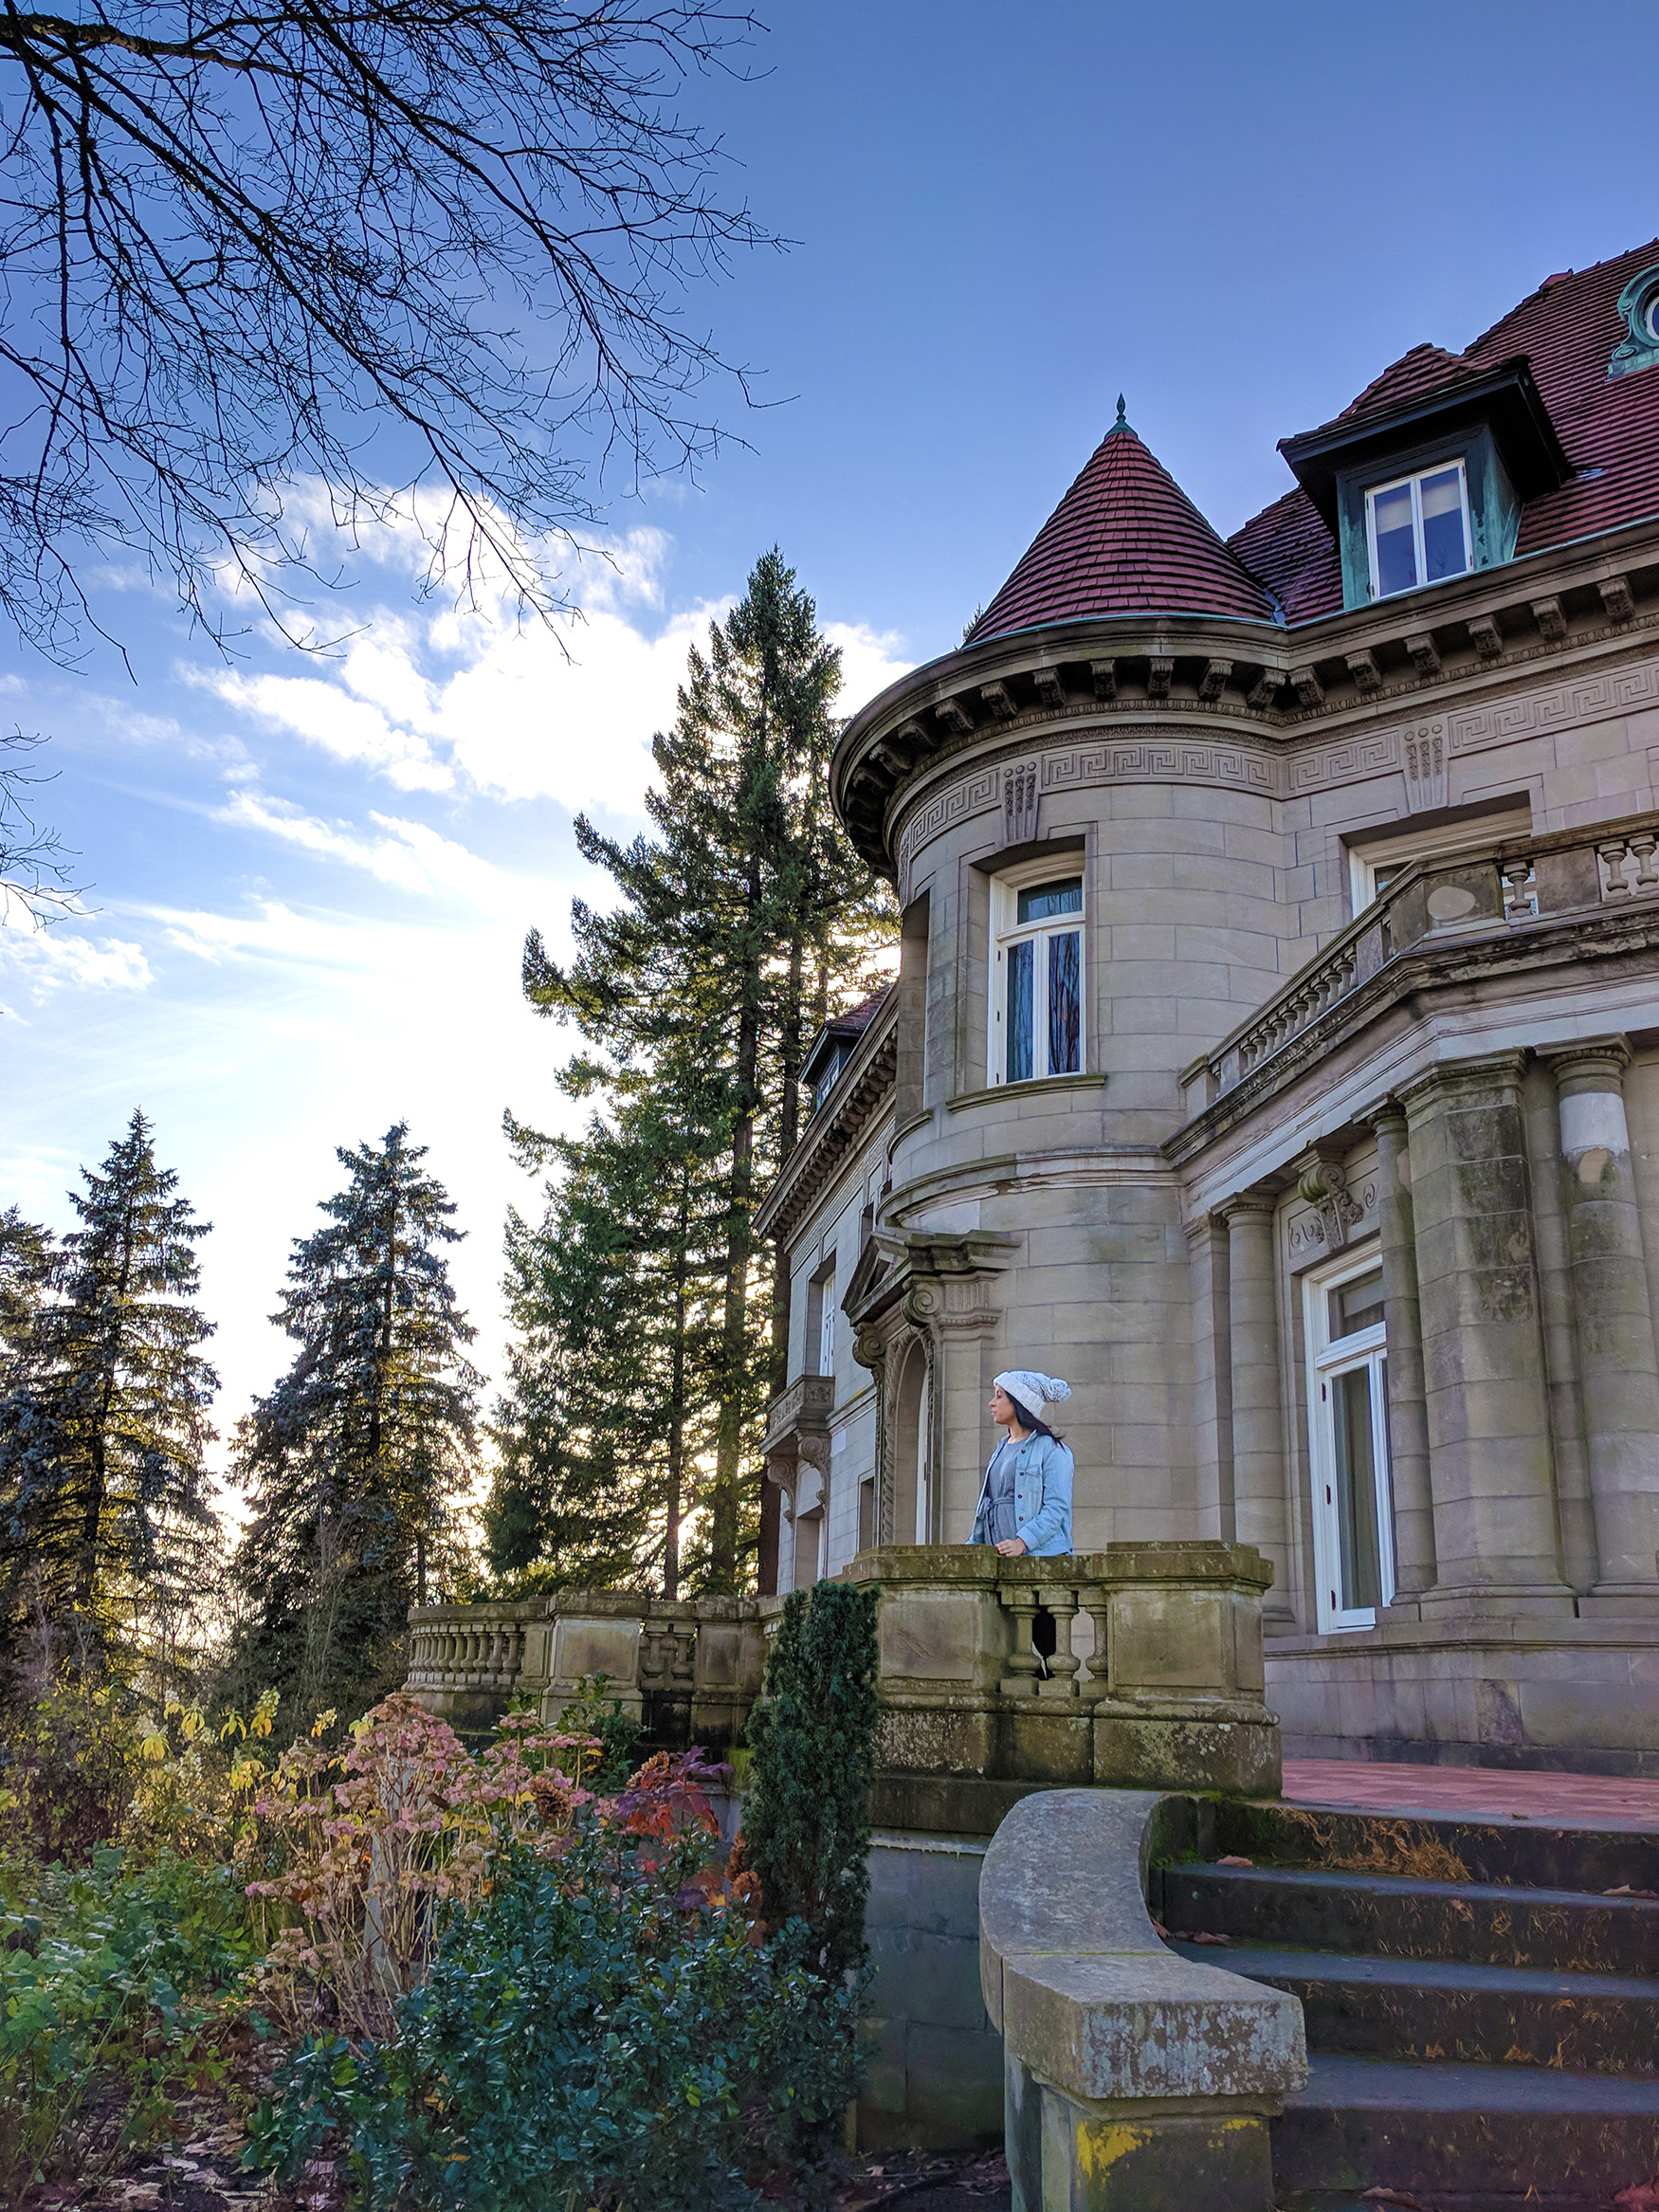 The trail will weave into Washington Park where it makes a steep ascent up to Pittock Mansion - which sits at one of the trail's highest and most scenic peaks.